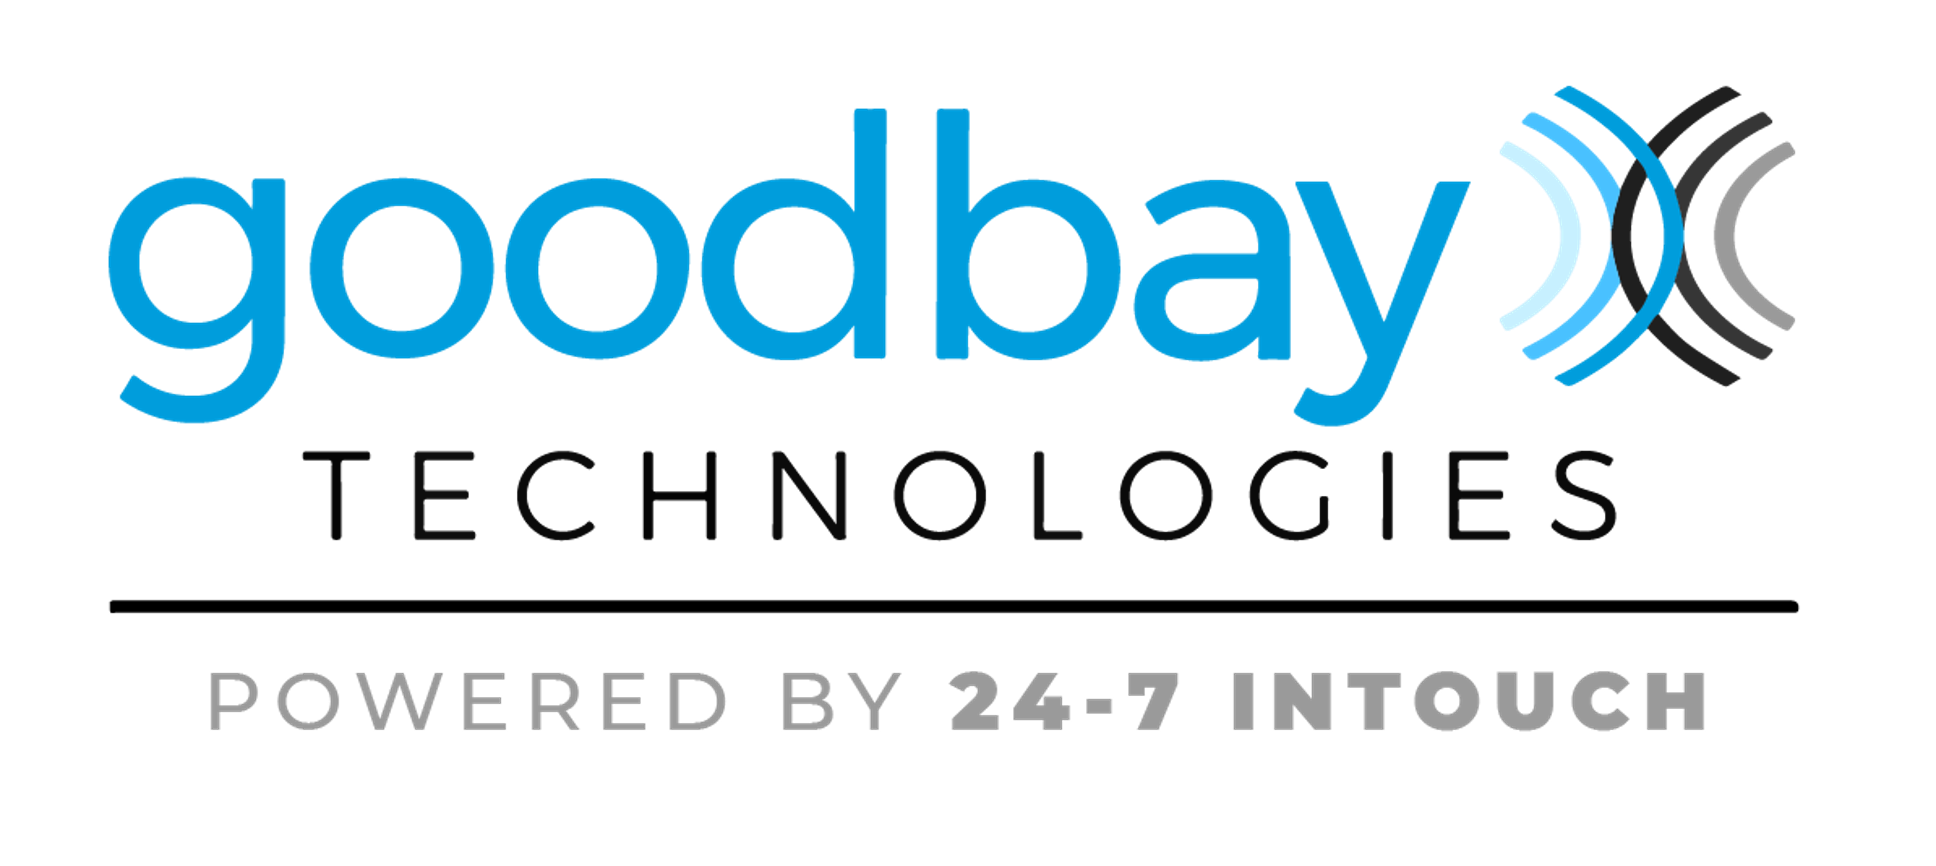 Goodbay-Color-LARGE-1